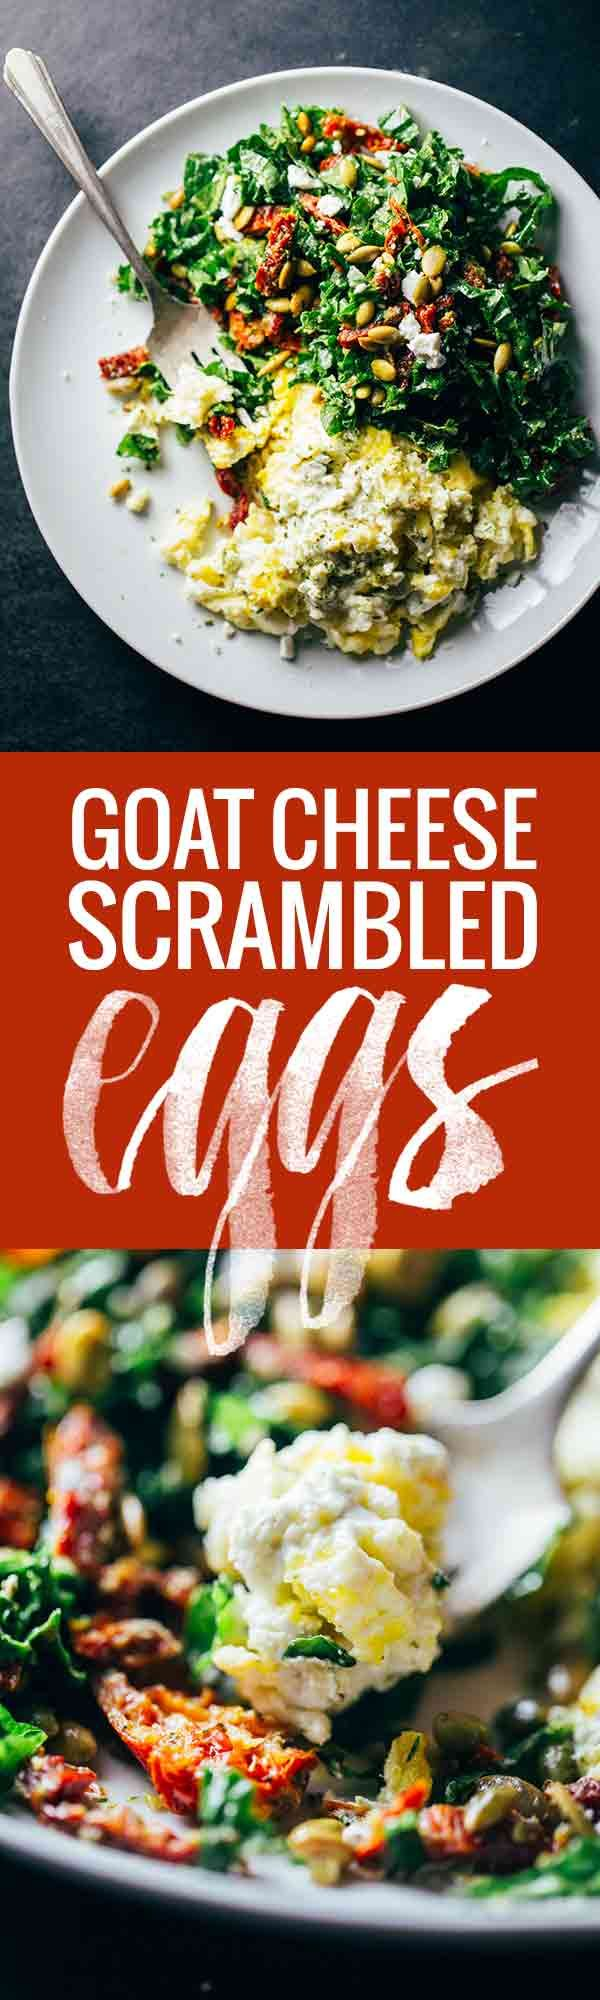 Goat Cheese Scrambled Eggs with Pesto Veggies - simple, easy, fast, healthy. 400 calories